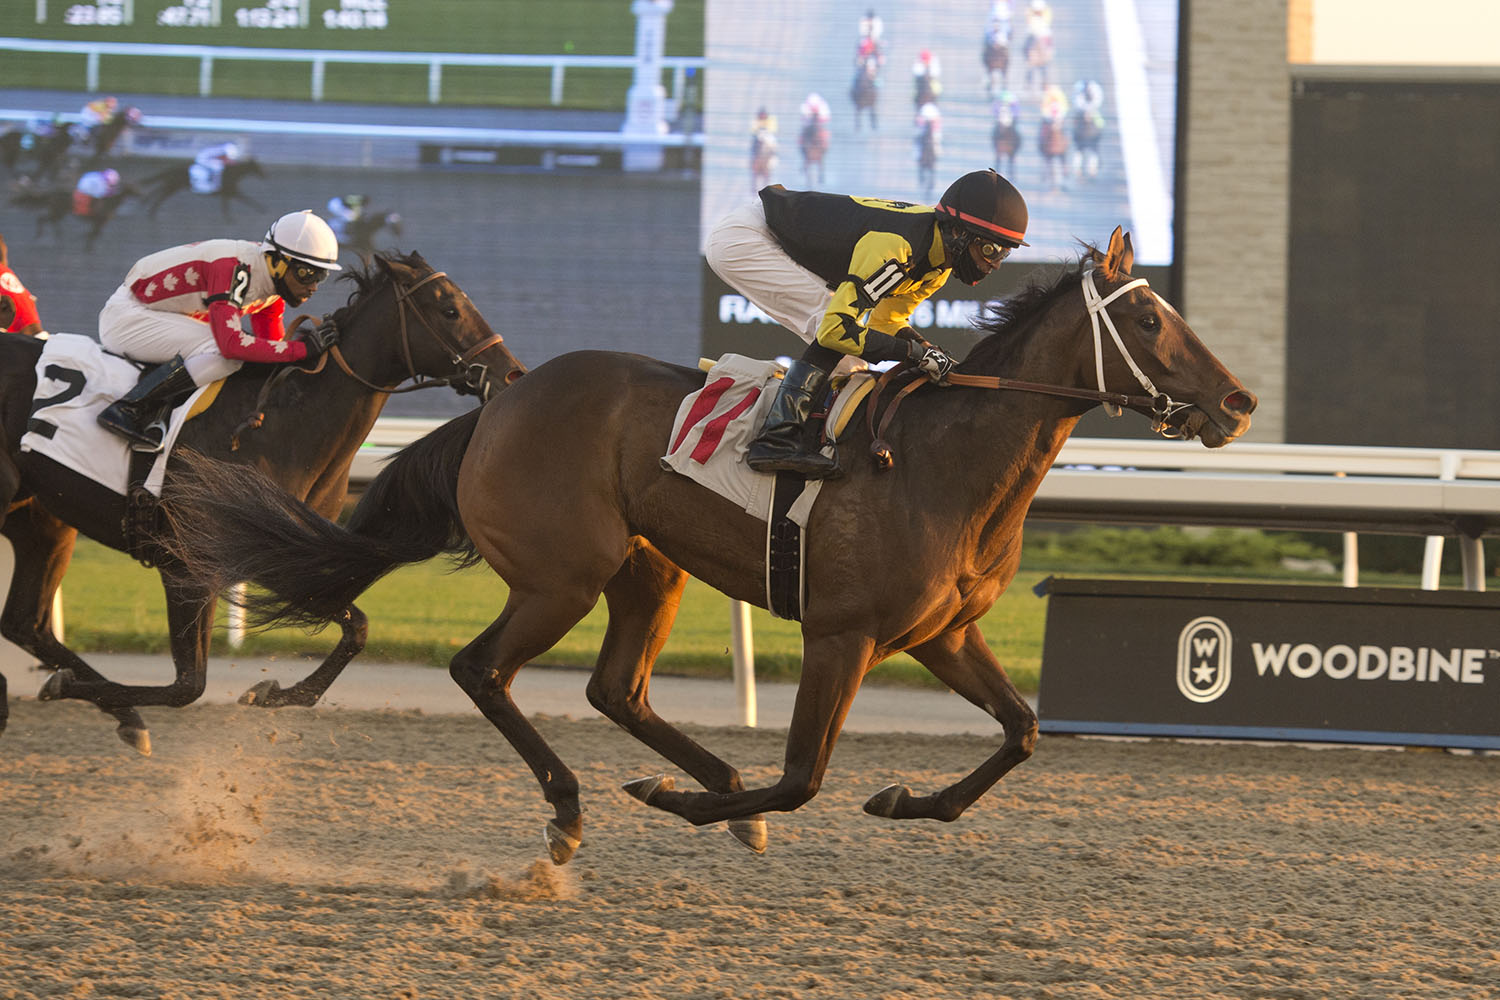 Ms Wicked winning the seventh race on November 8 at Woodbine Racetrack. (Michael Burns Photo)